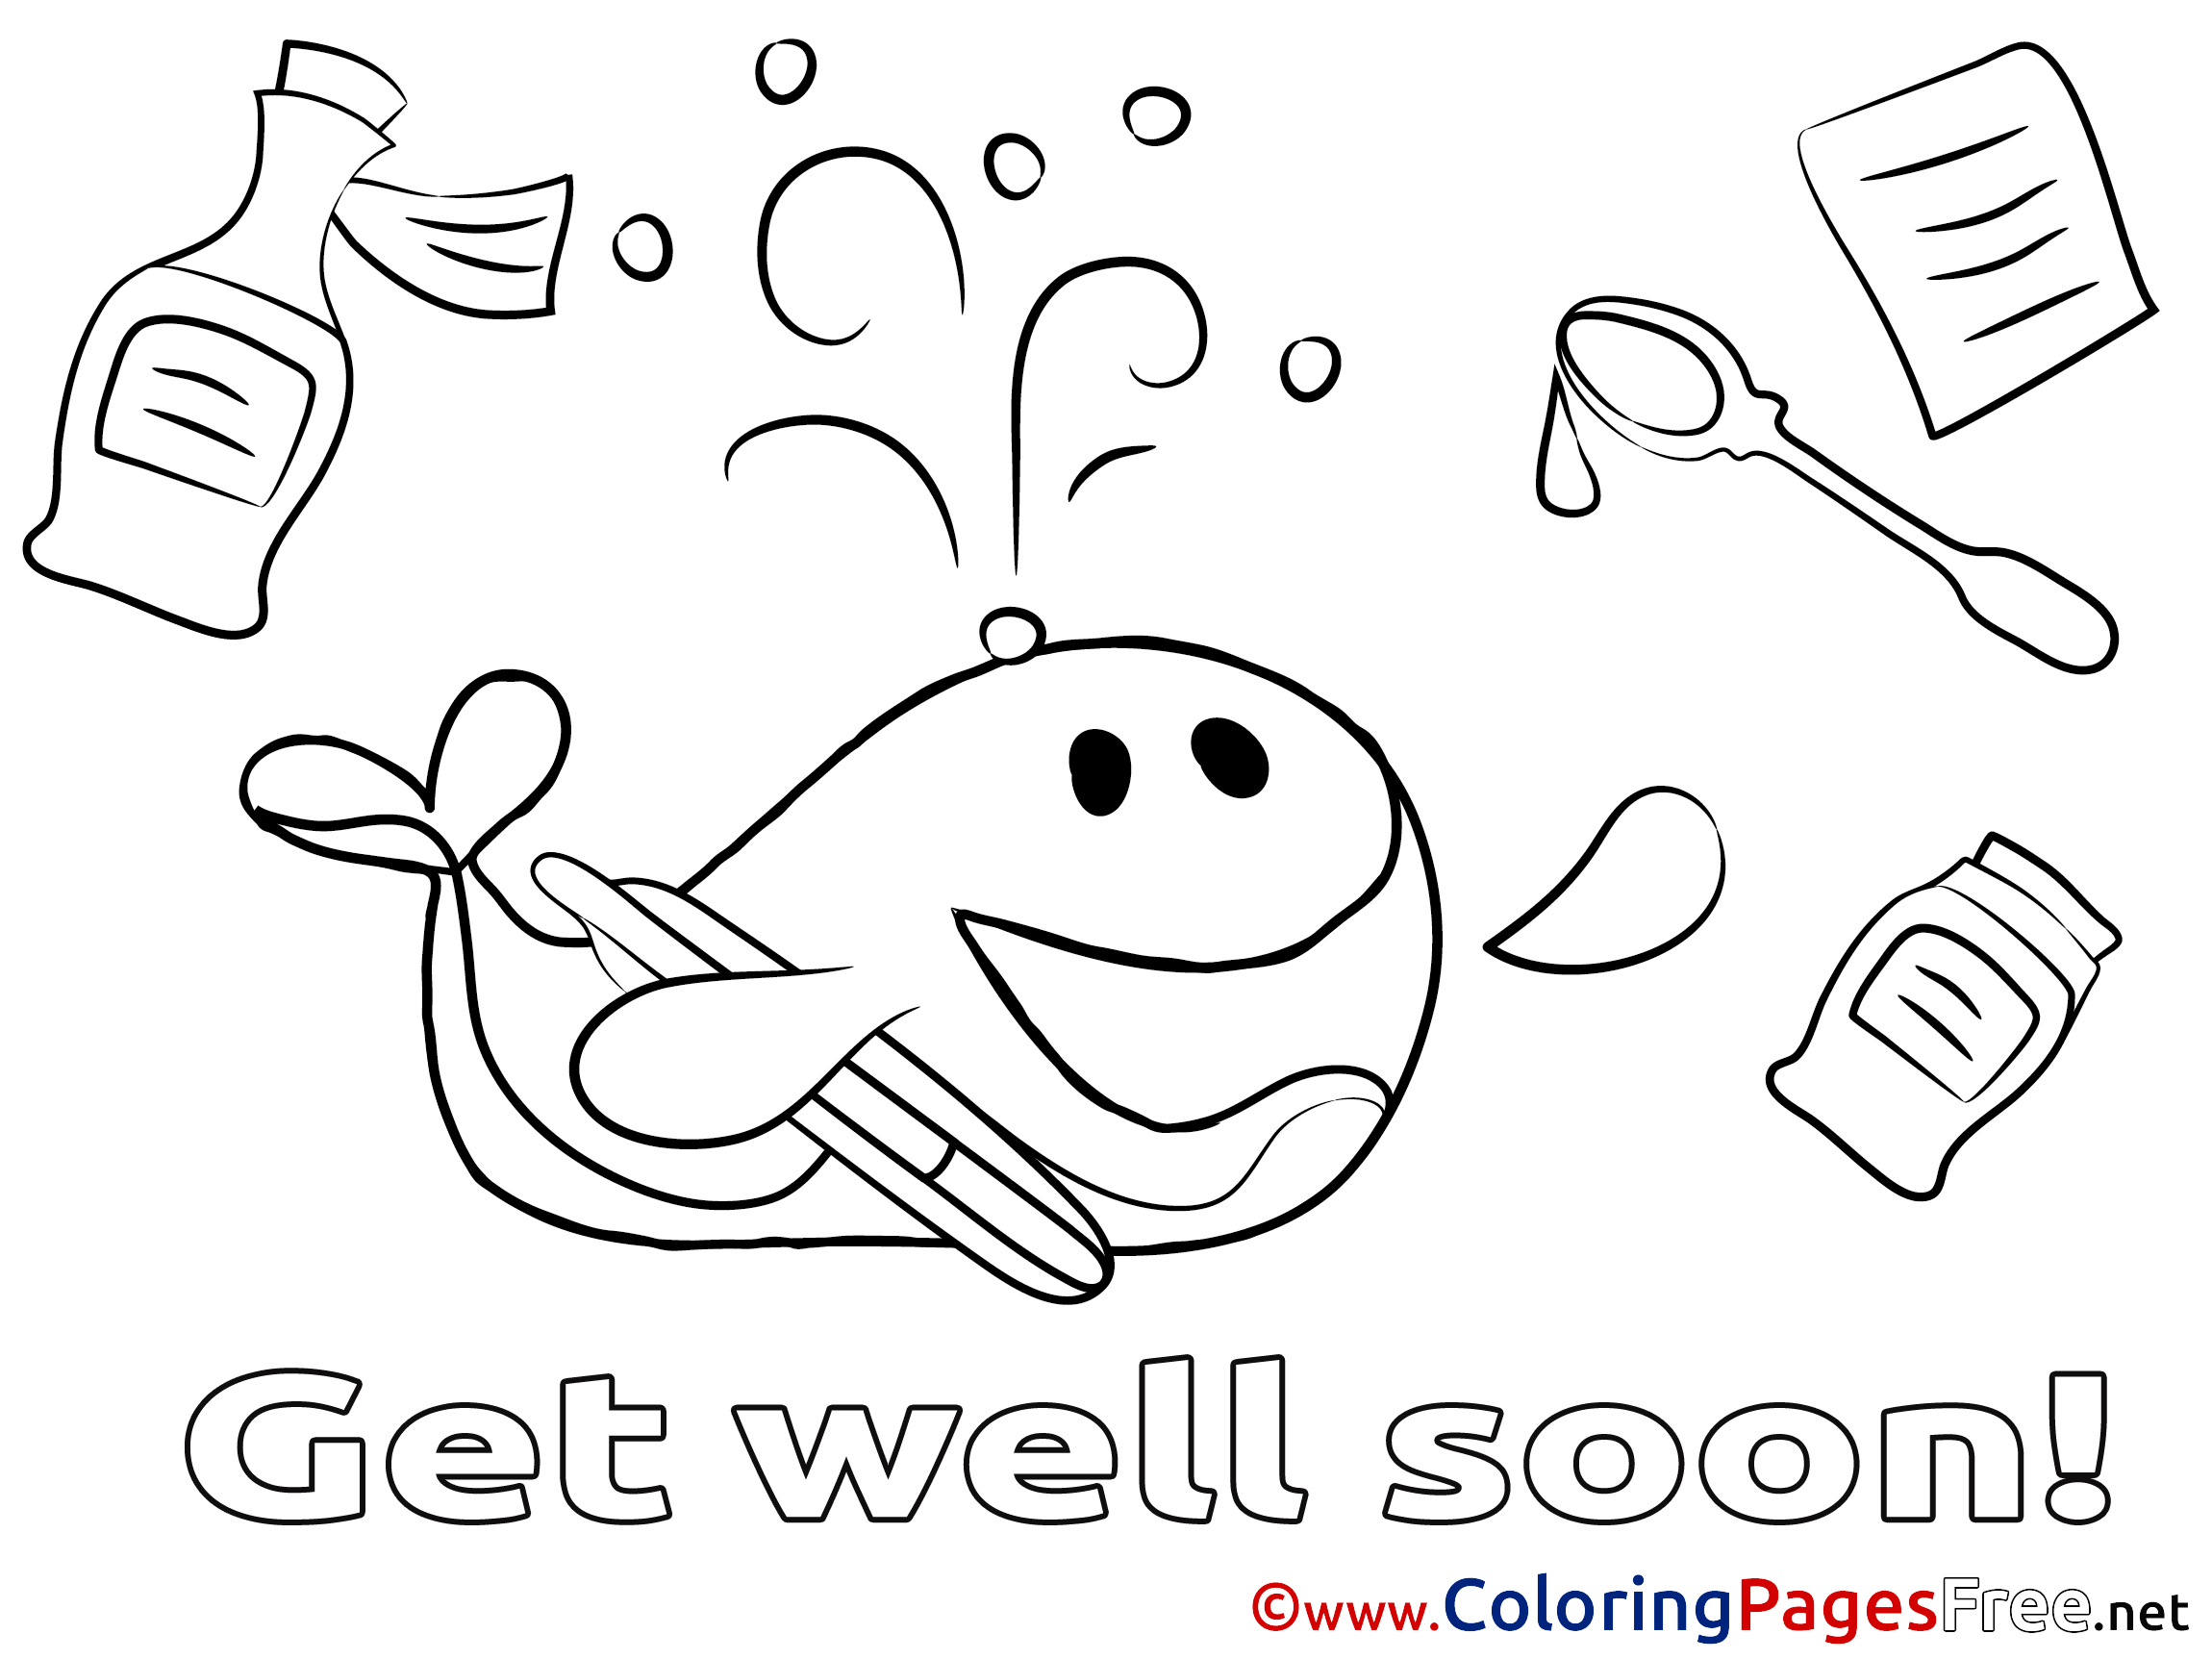 Whale Get well soon free Coloring Pages